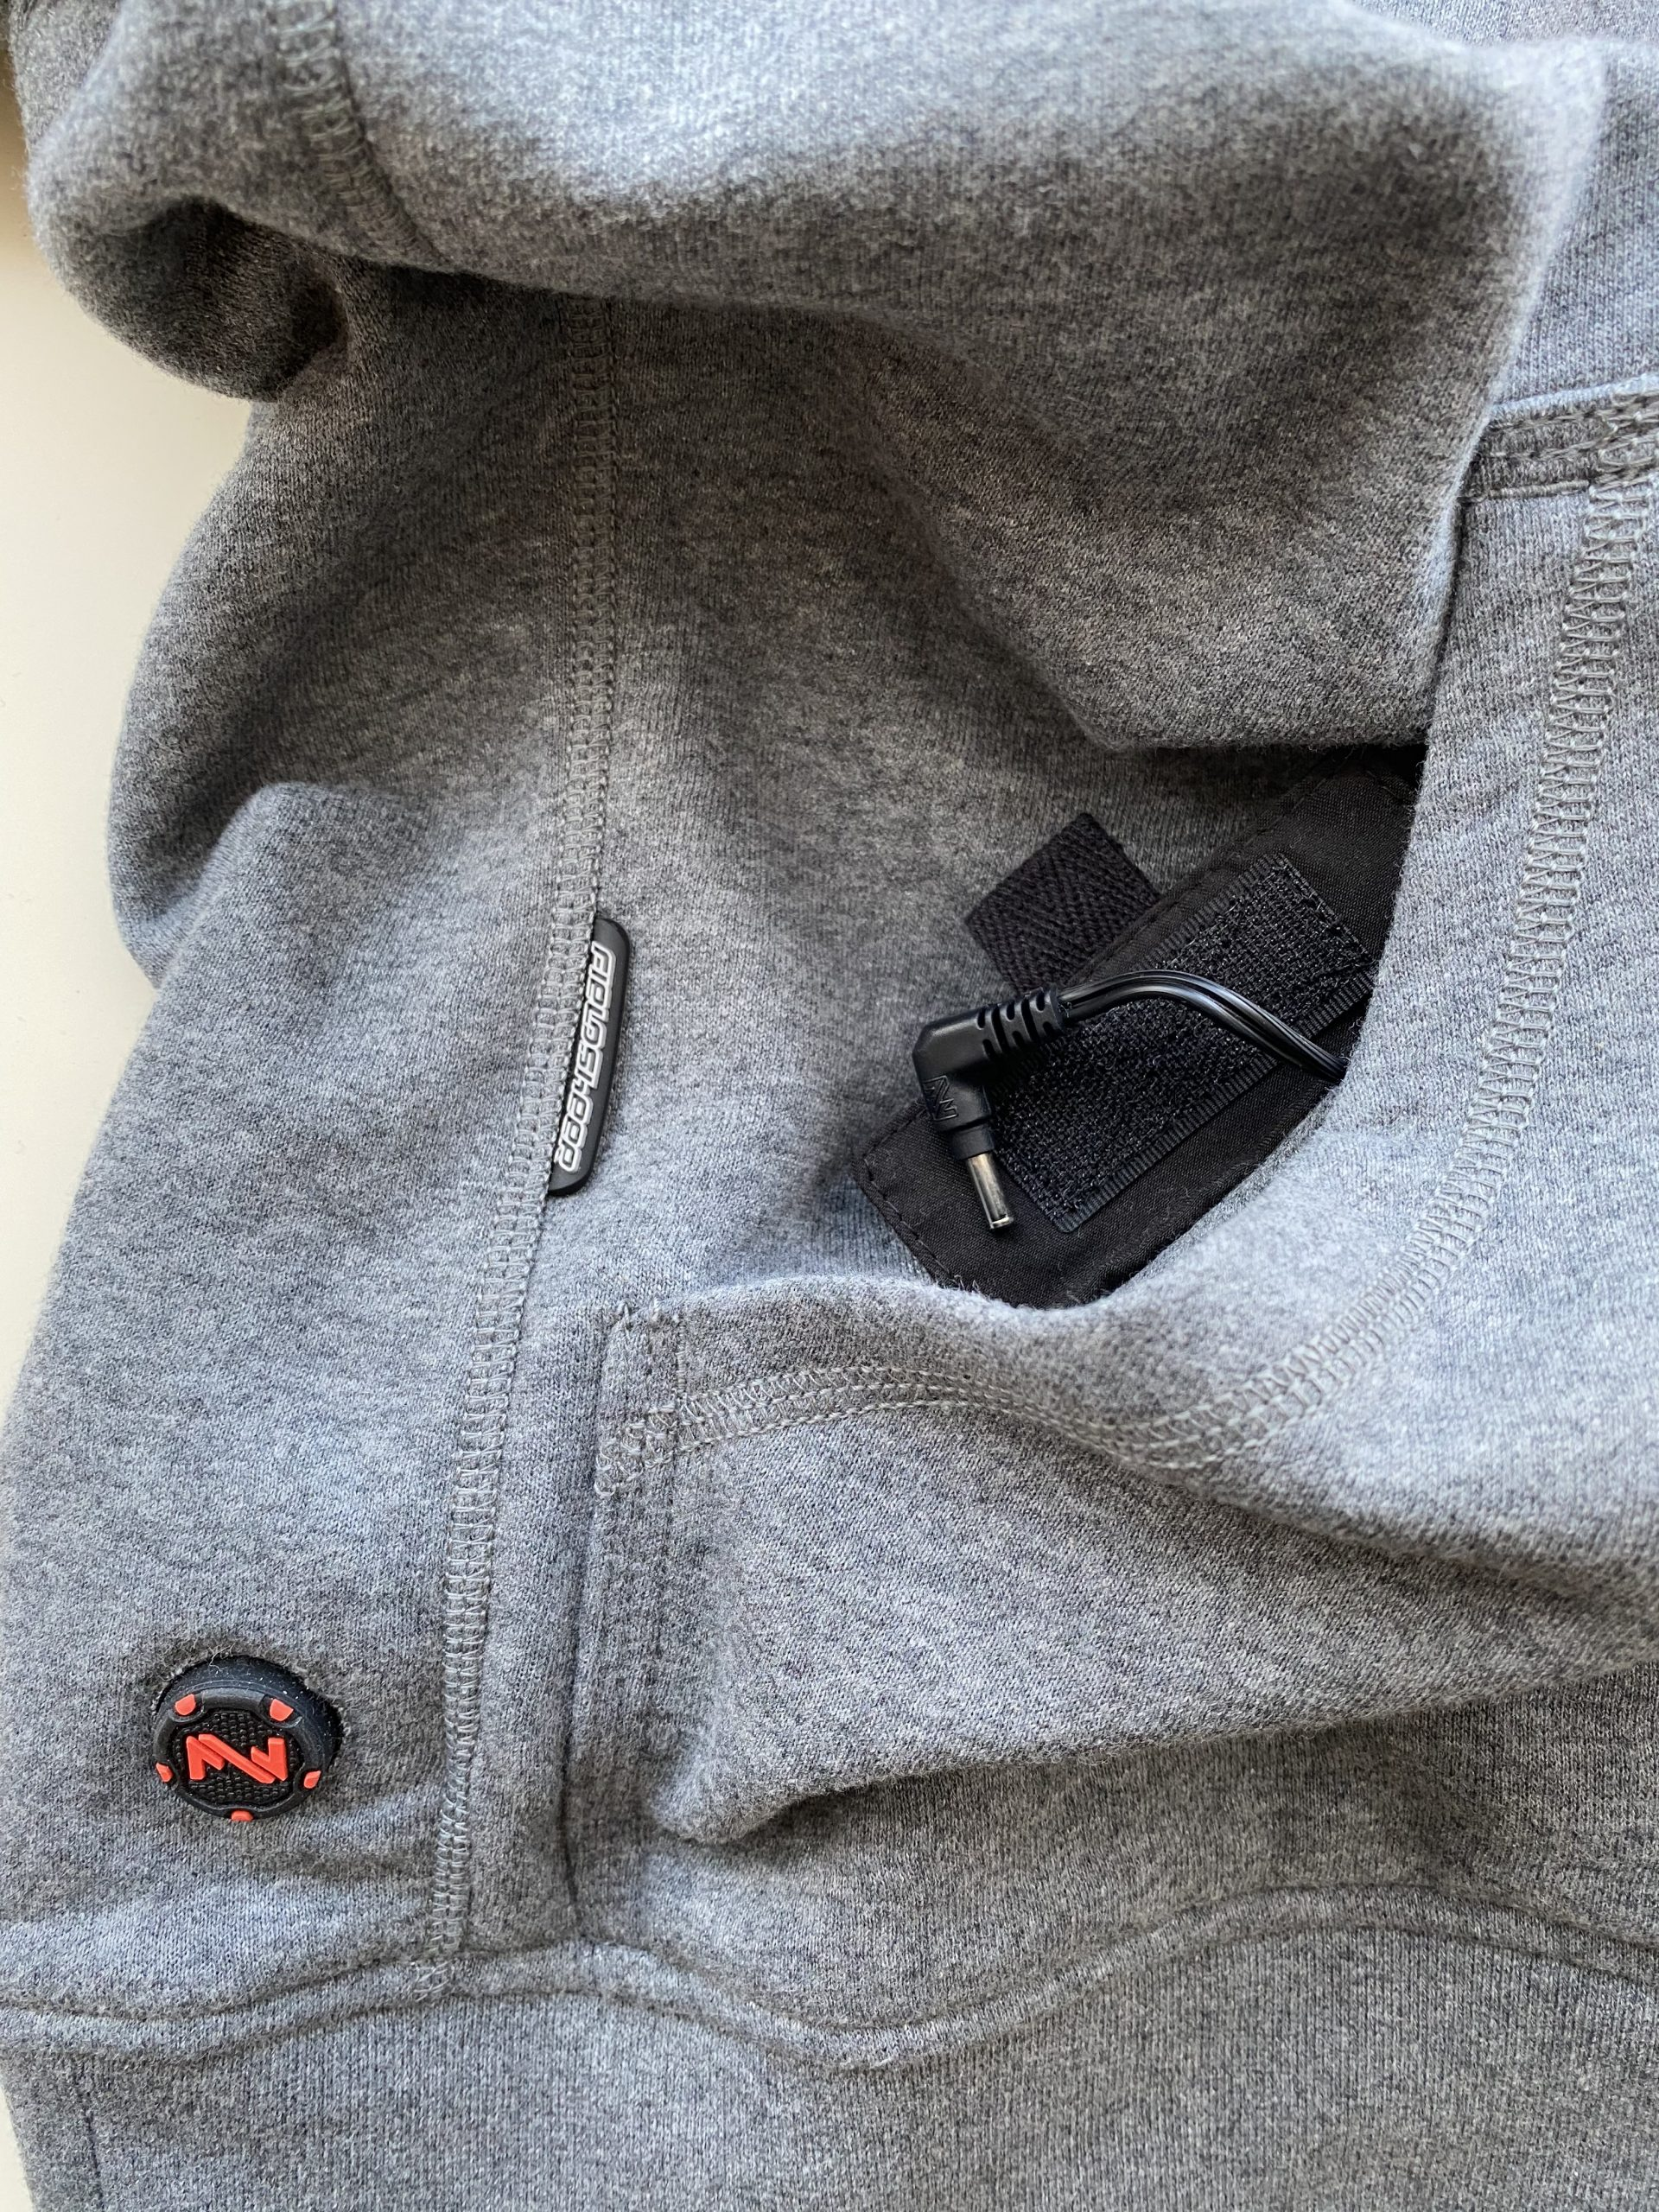 Mobile Warming Phase Hoodie Velcro Pouch for Battery